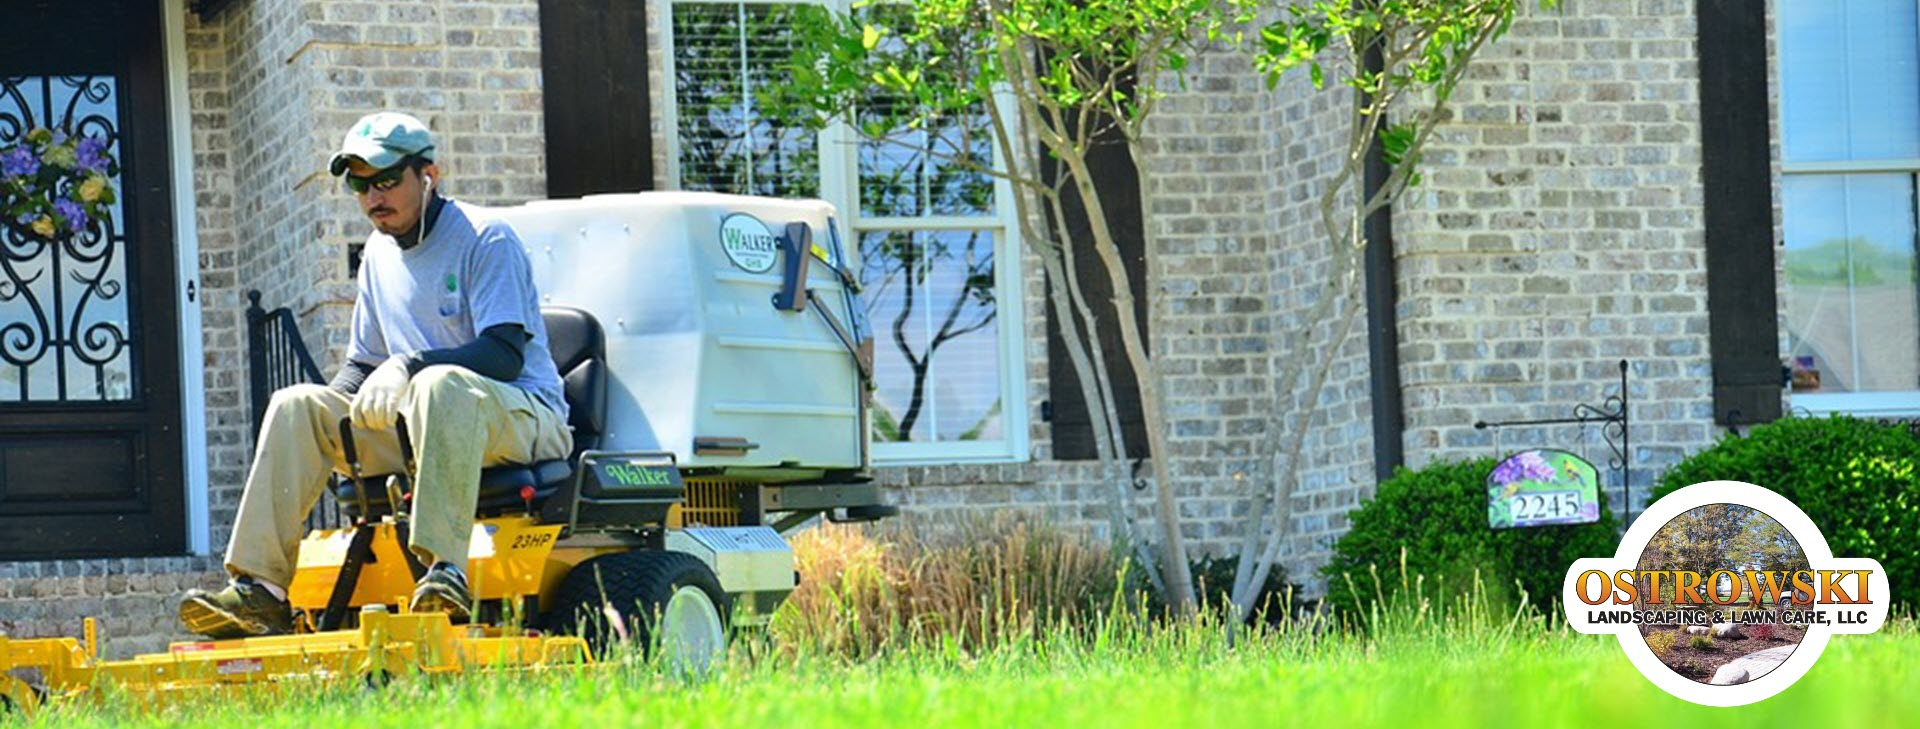 Lawn maintenance services including aeration, <br /> fertilization, and spring and fall clean up